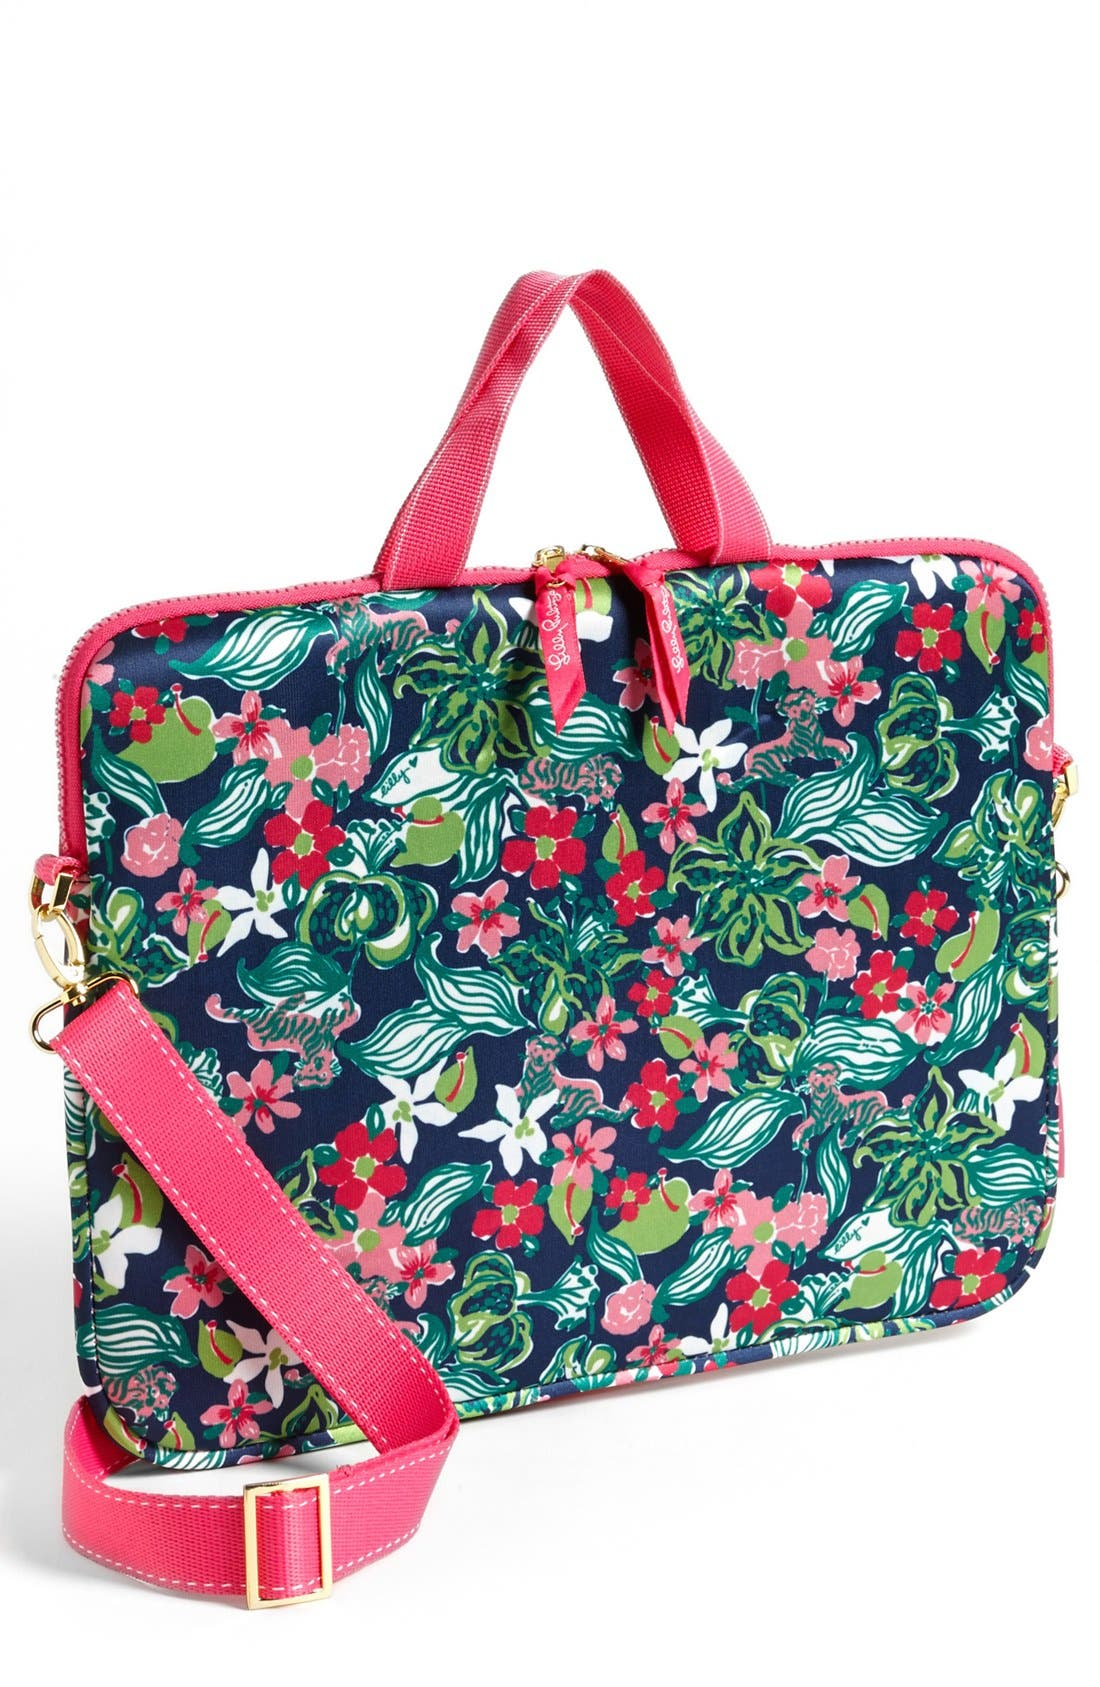 Main Image - Lilly Pulitzer® 'Tiger Lilly' Laptop Tote